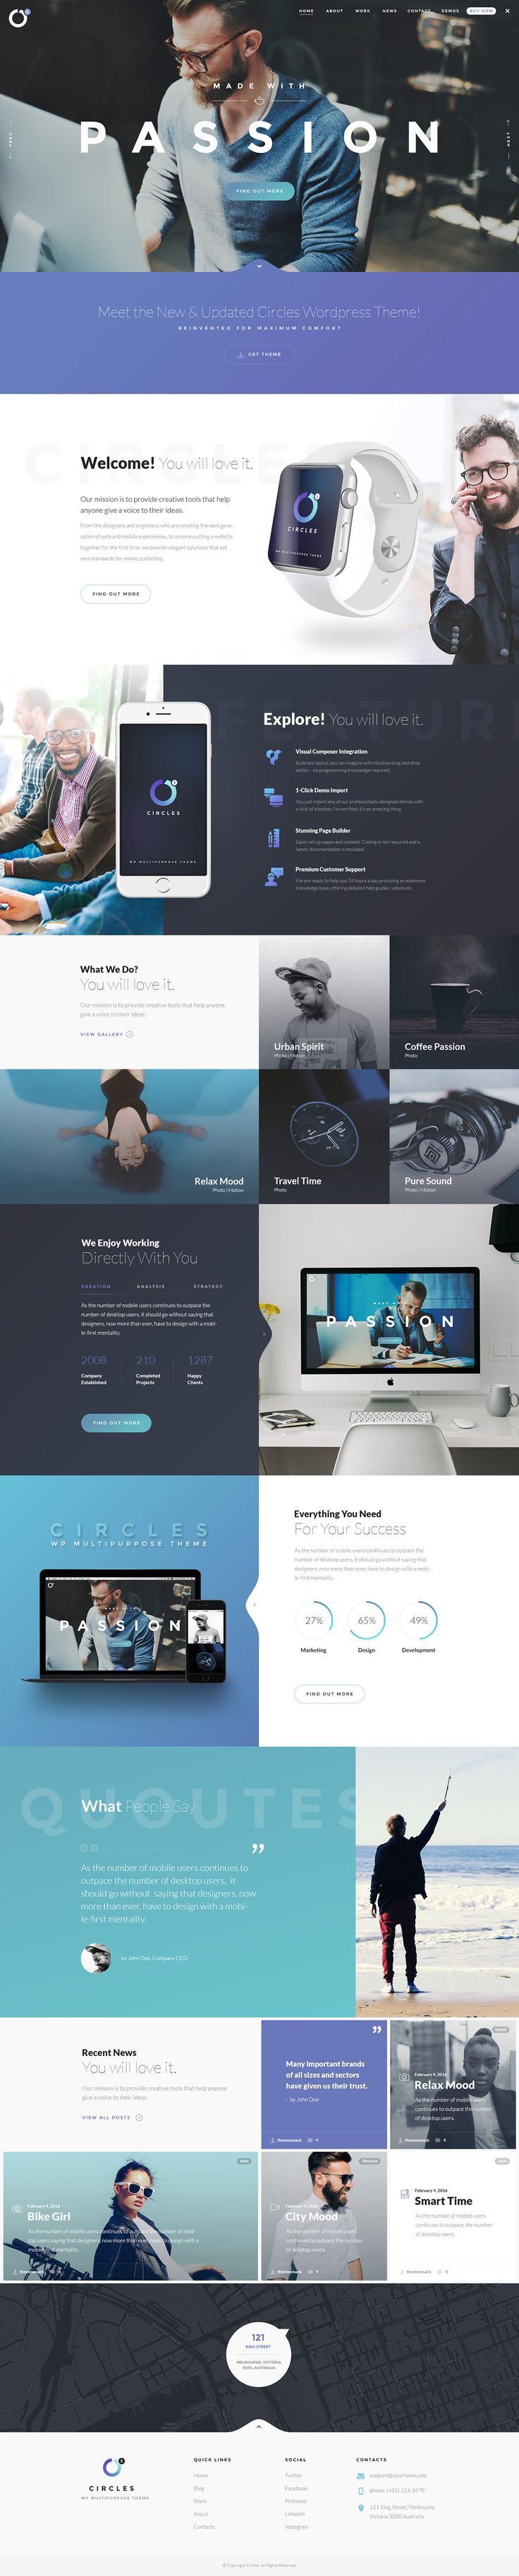 181 best web ui images on pinterest design web design websites